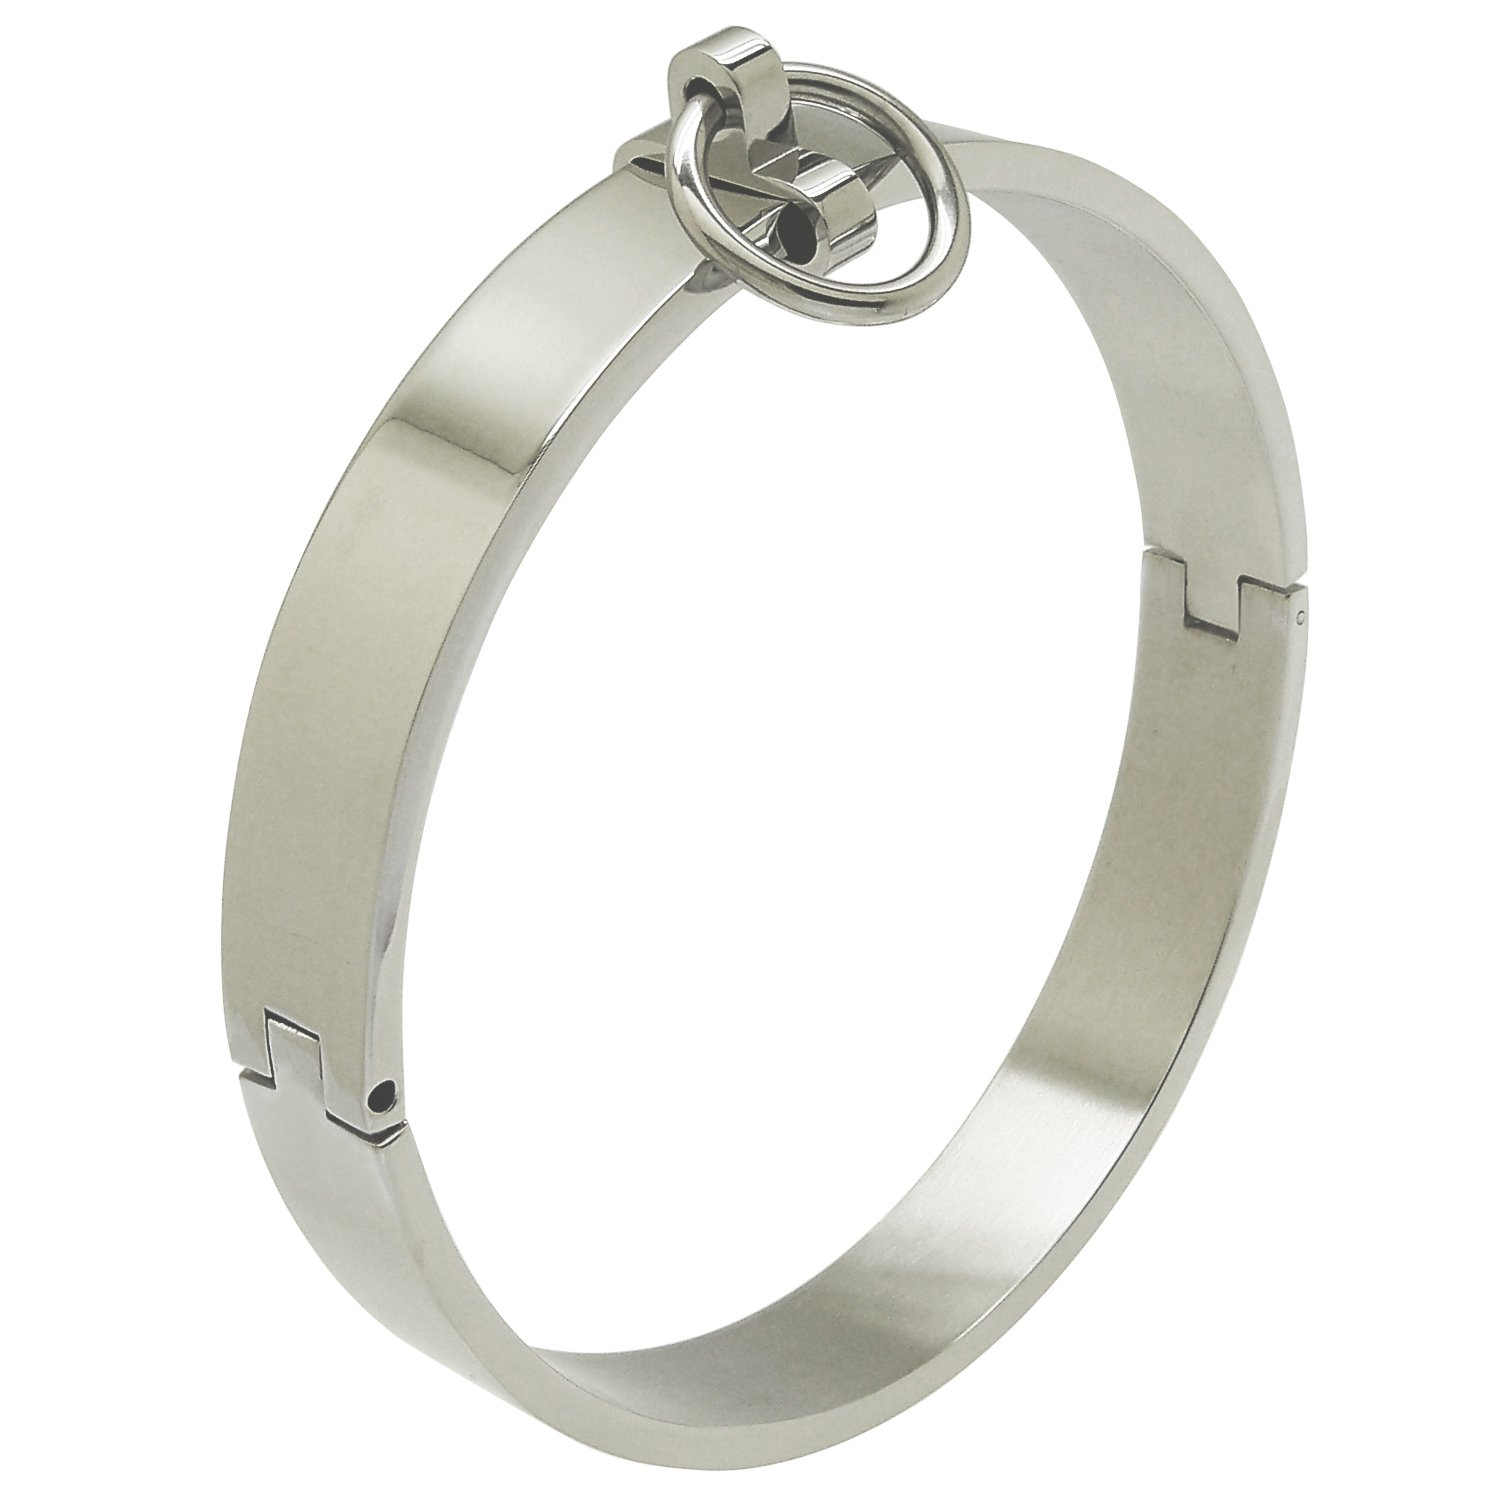 Stainless Steel Slave Collar Choker Necklace with Removable Ring (135 mm, Silver)